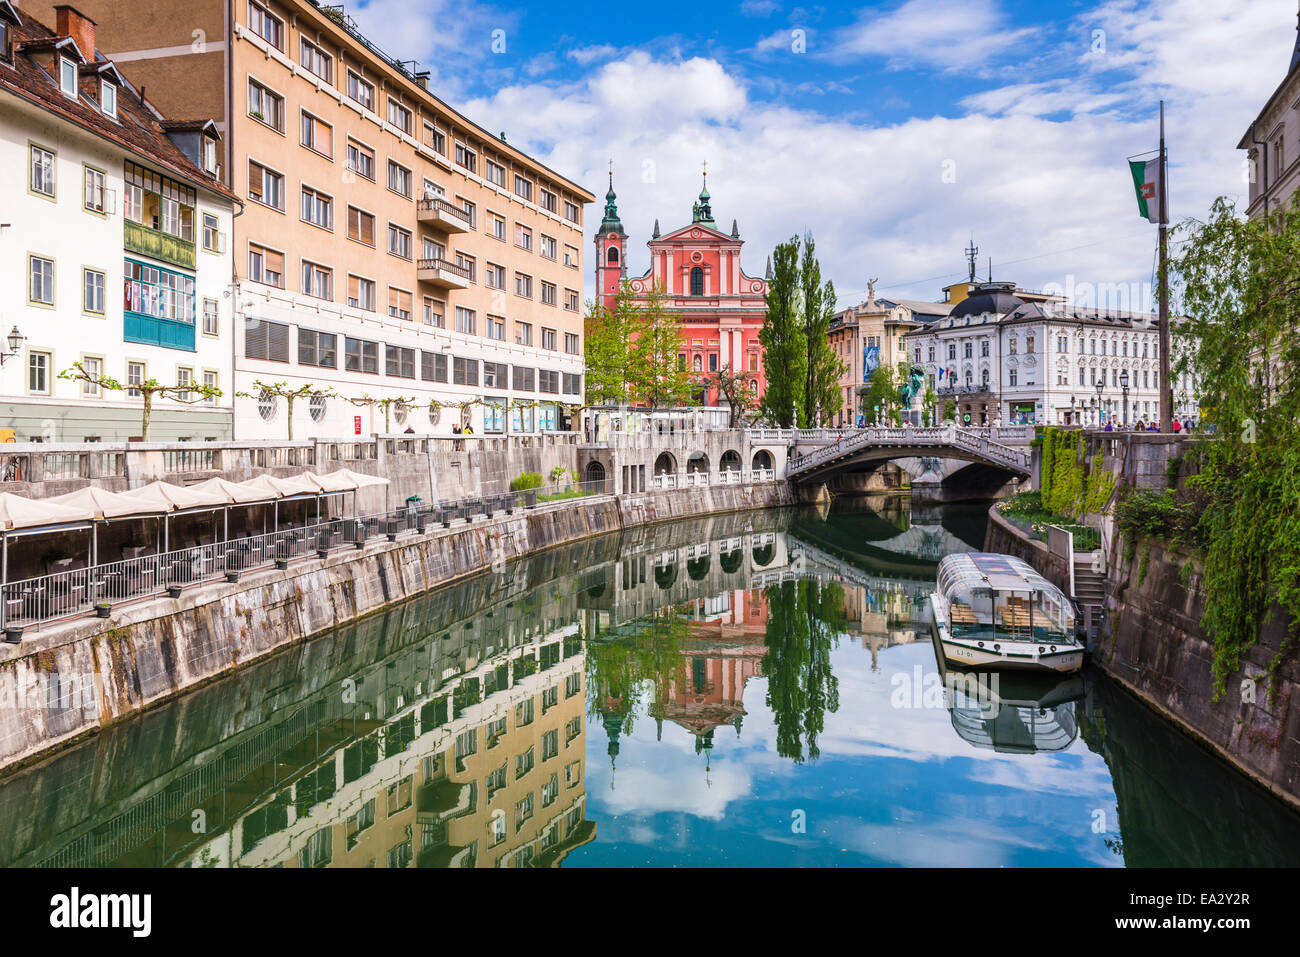 Ljubljana triple bridge and Franciscan Church of the Annunciation reflected in Ljubljanica River, Ljubljana, Slovenia - Stock Image